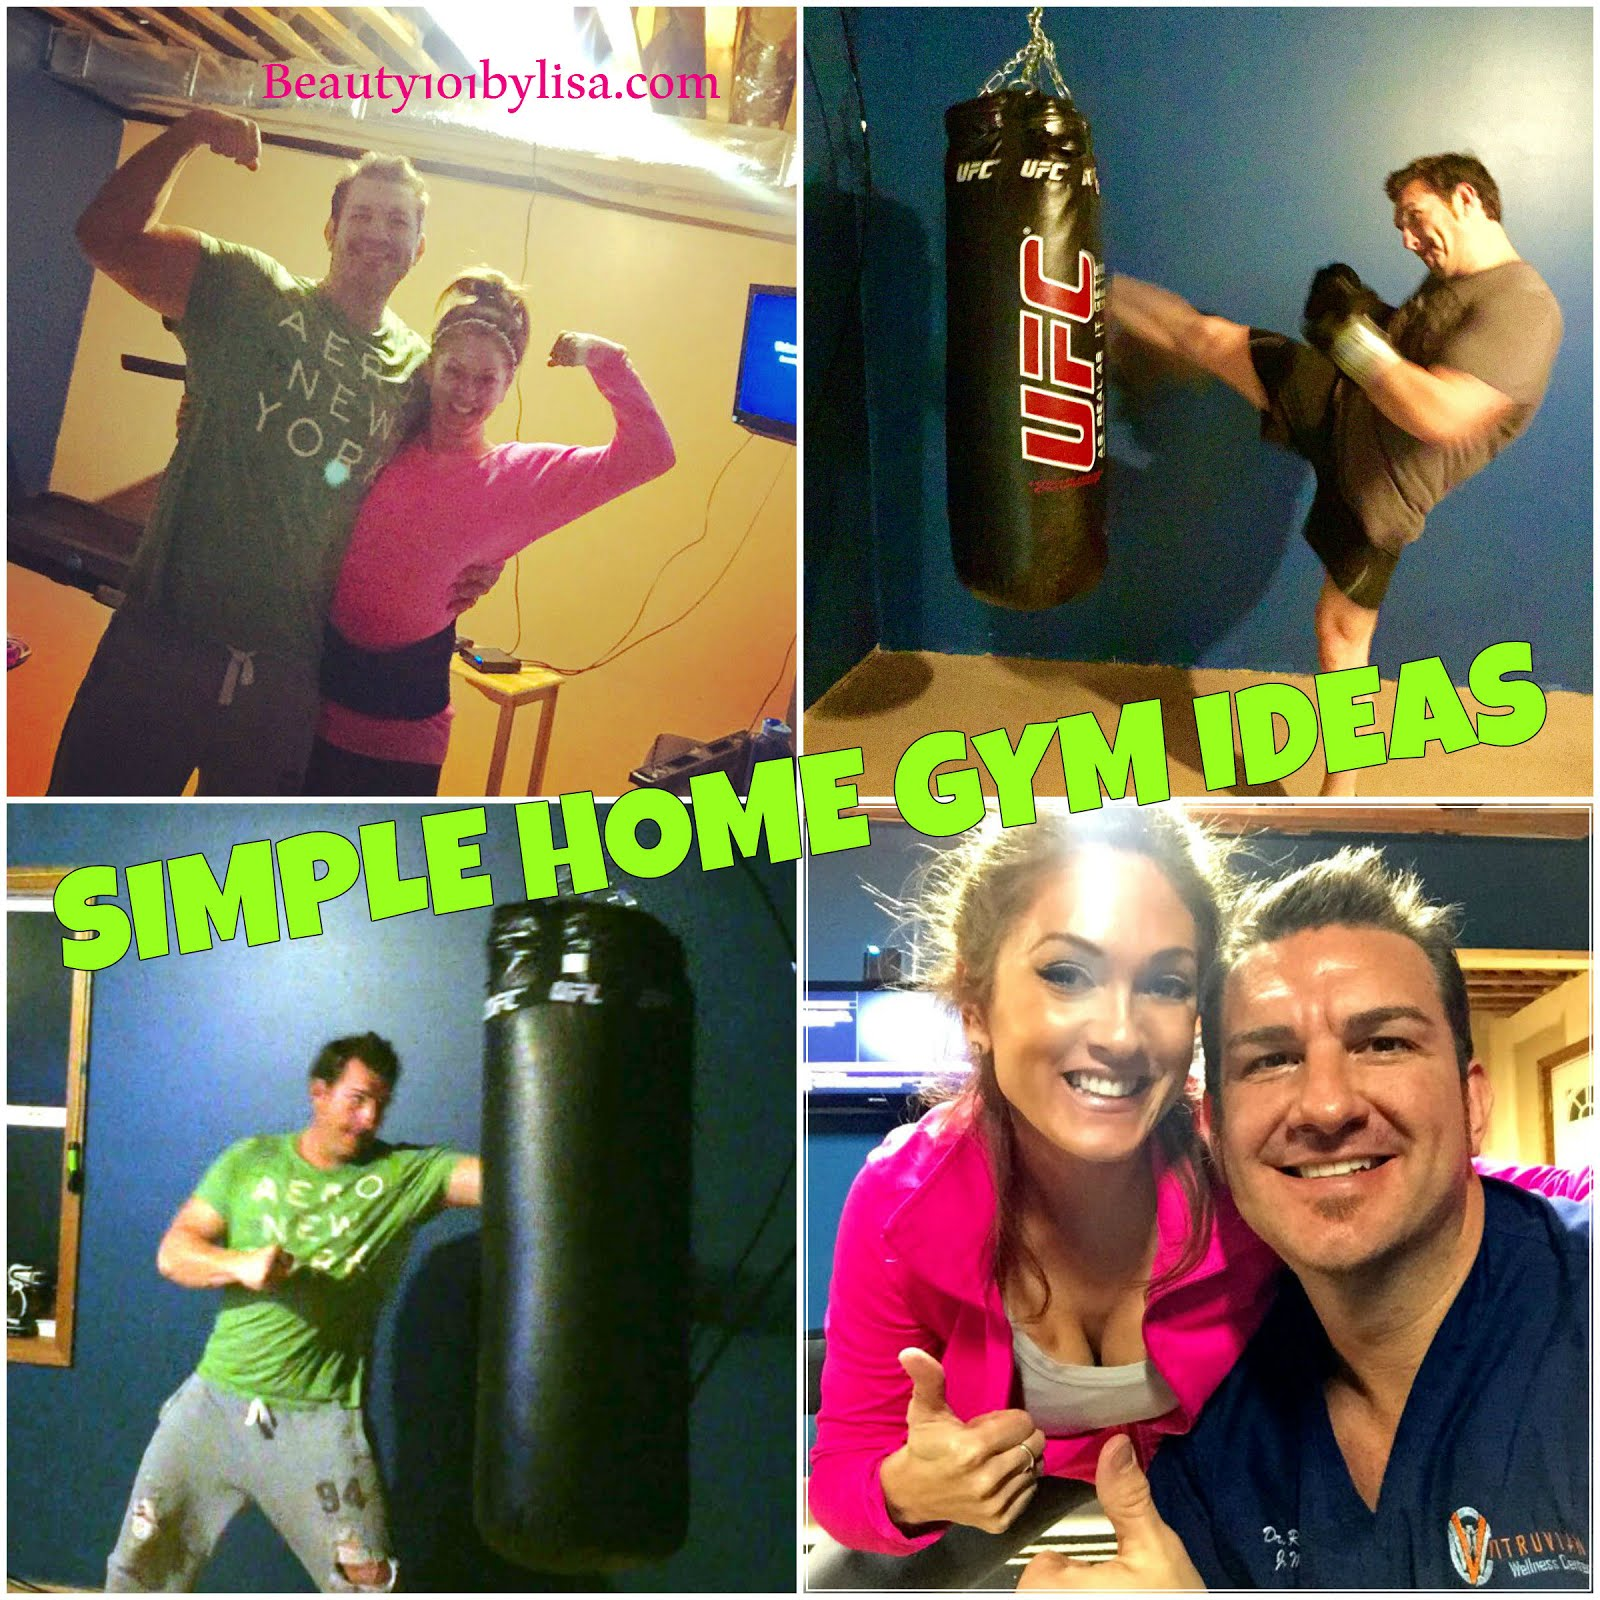 Beauty bylisa simple home gym ideas